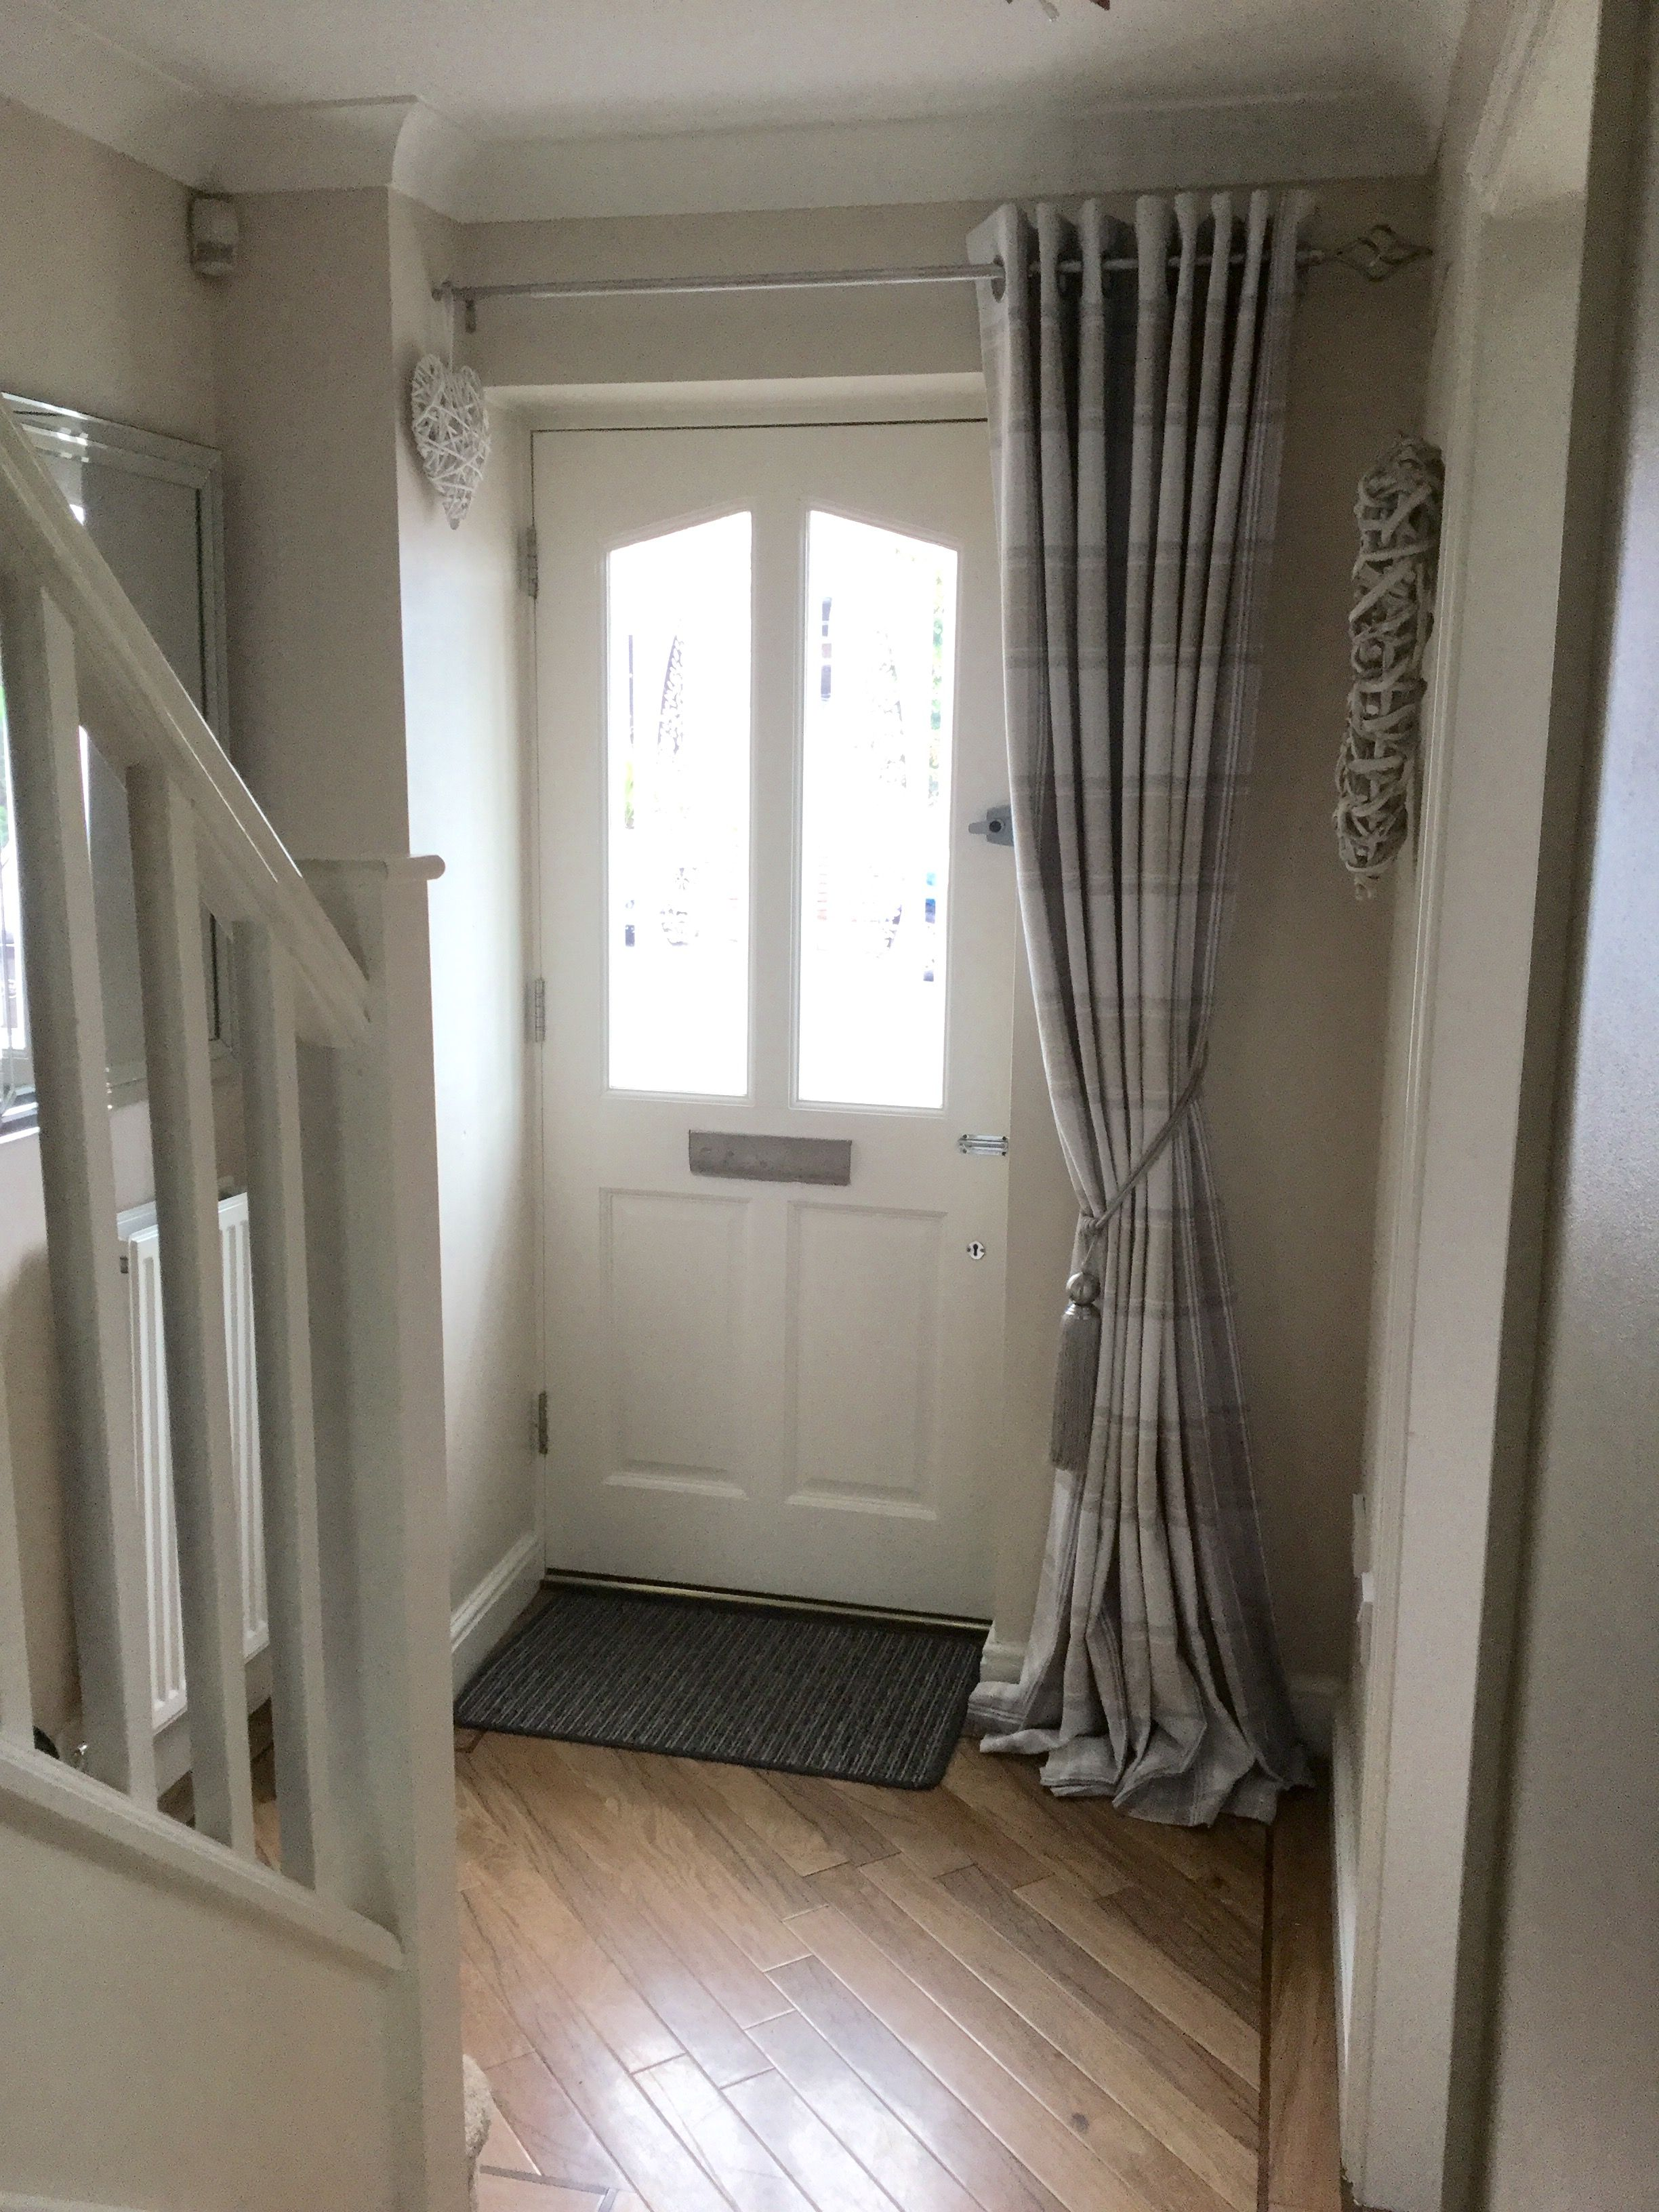 My Hallway Curtain From Dunelm With Grey Tieback White